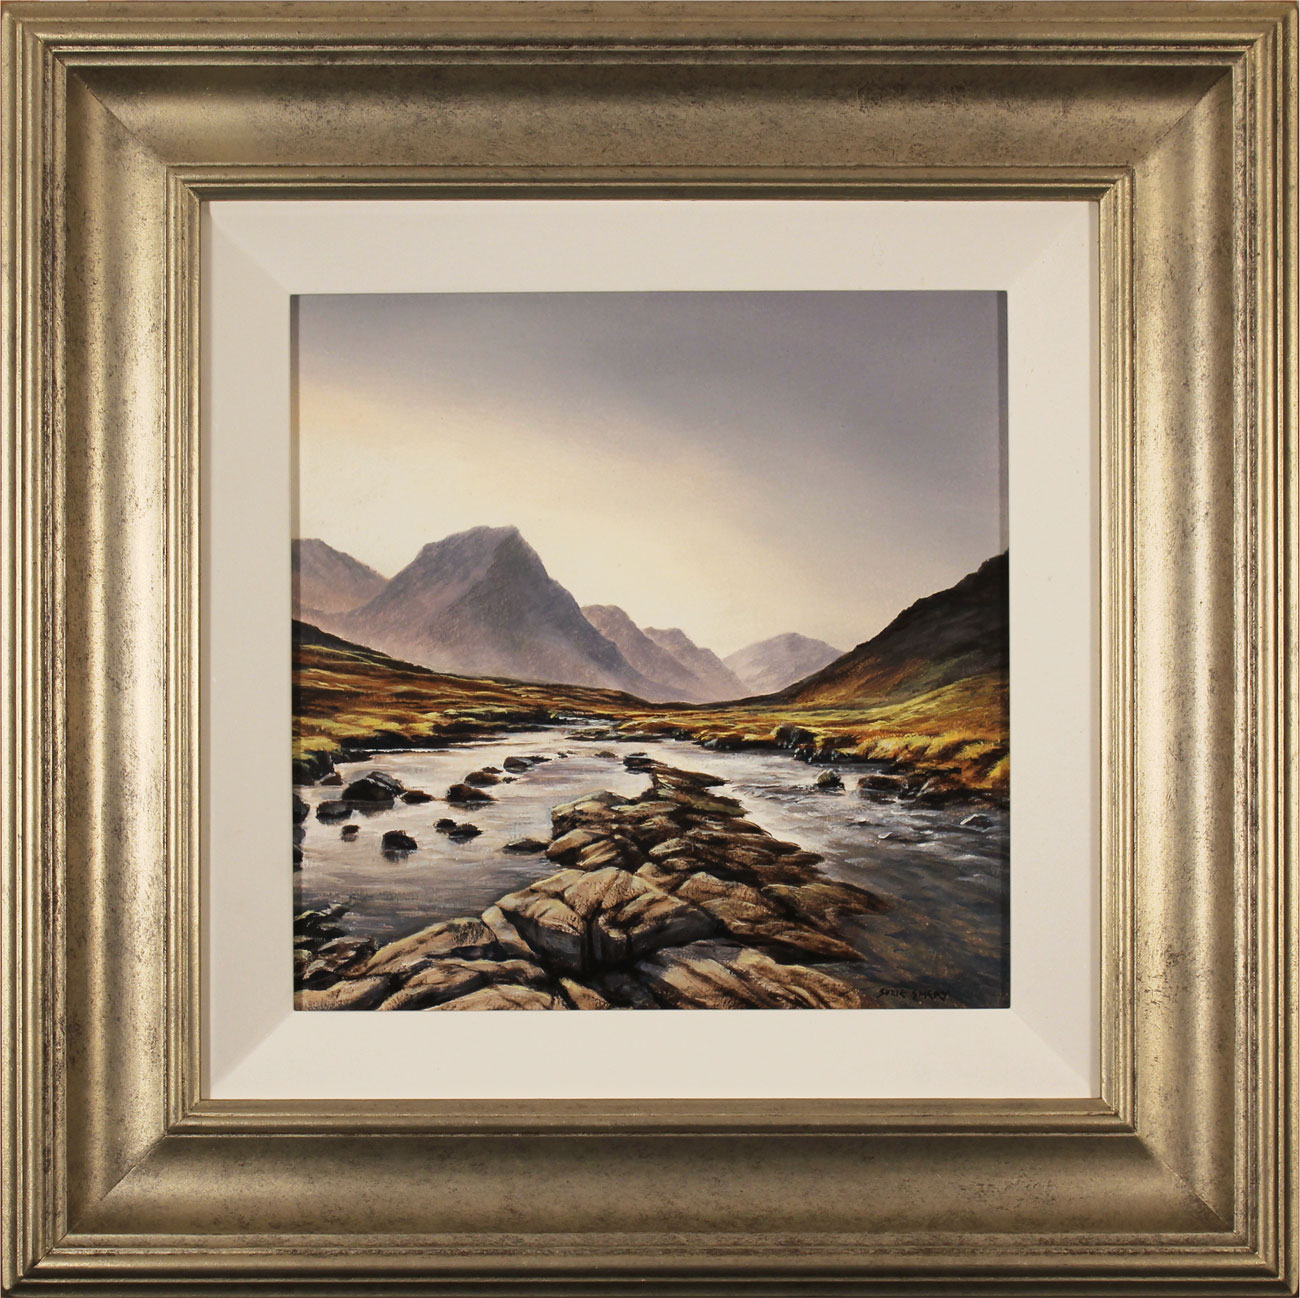 Suzie Emery, Original acrylic painting on board, Glen Etive, Scotland Click to enlarge